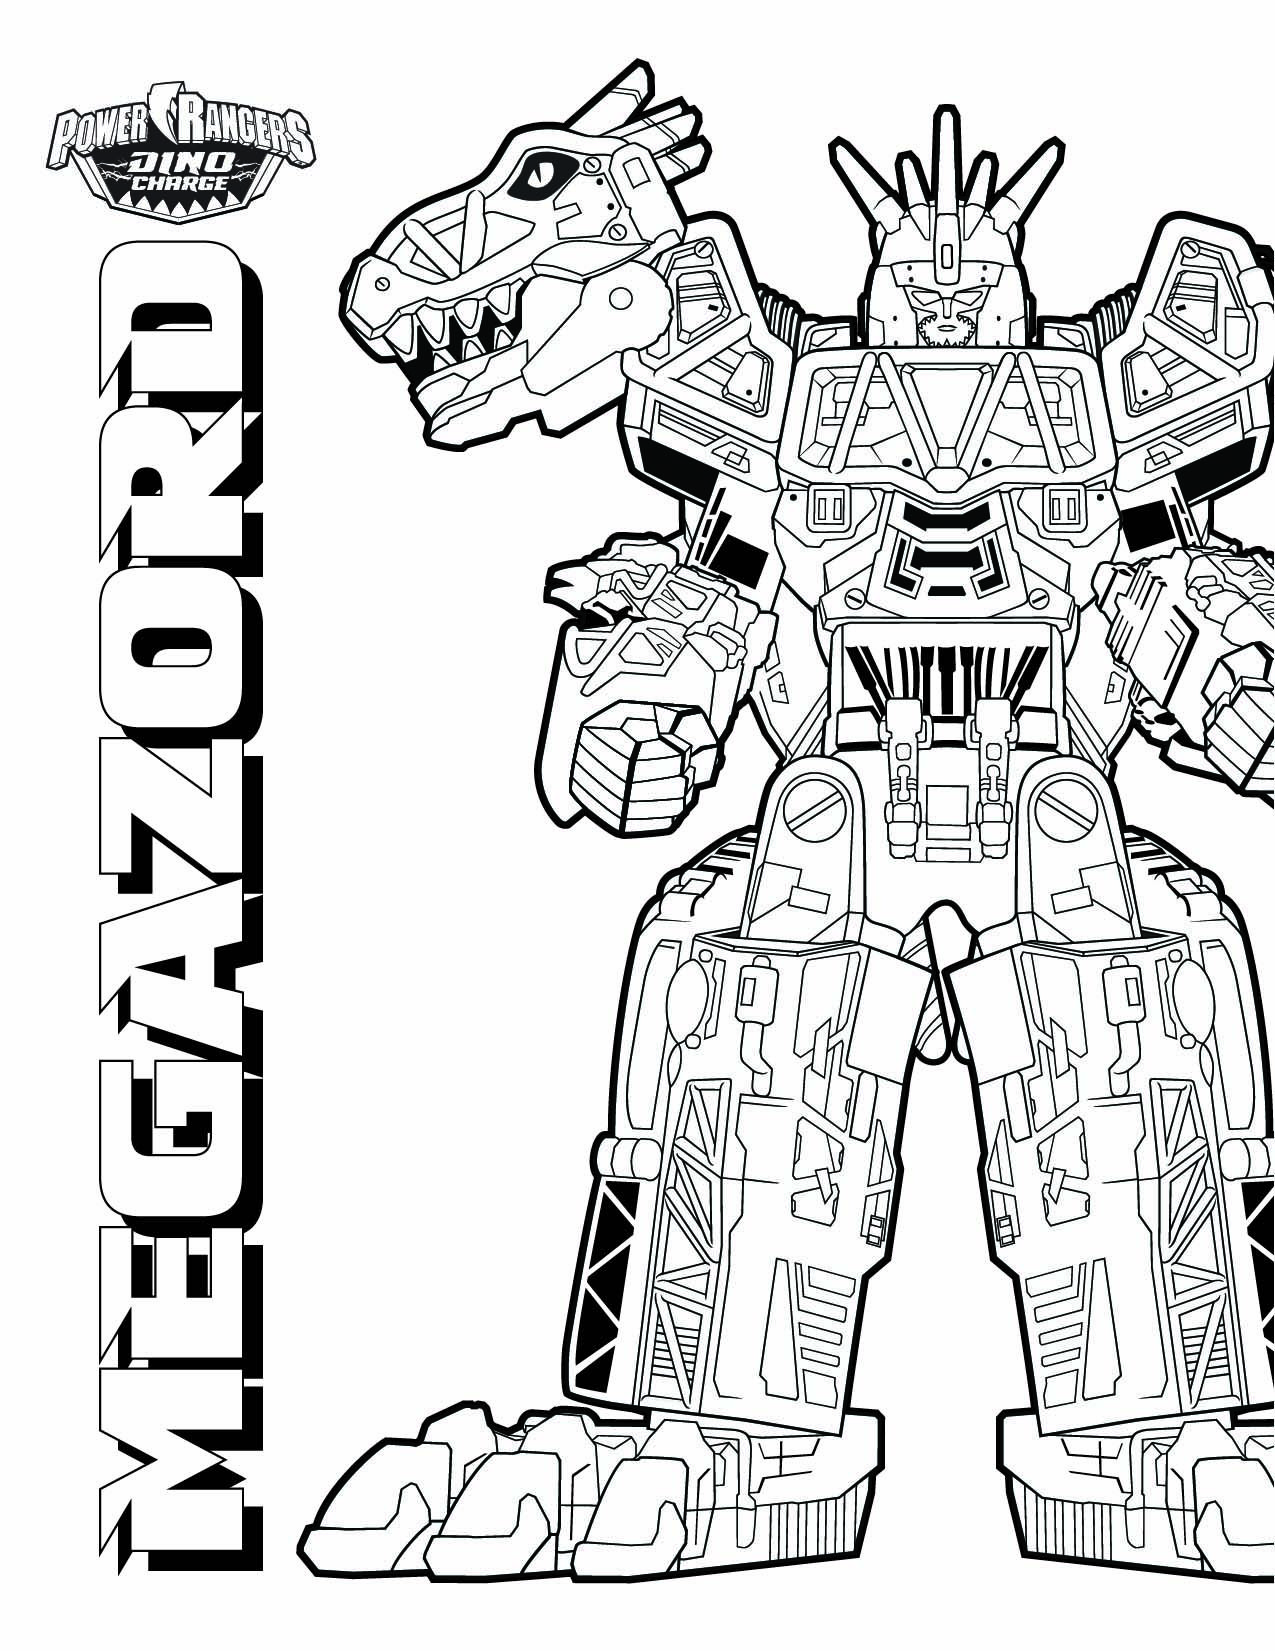 Pin de Power Rangers en Power Rangers Coloring Pages | Pinterest ...